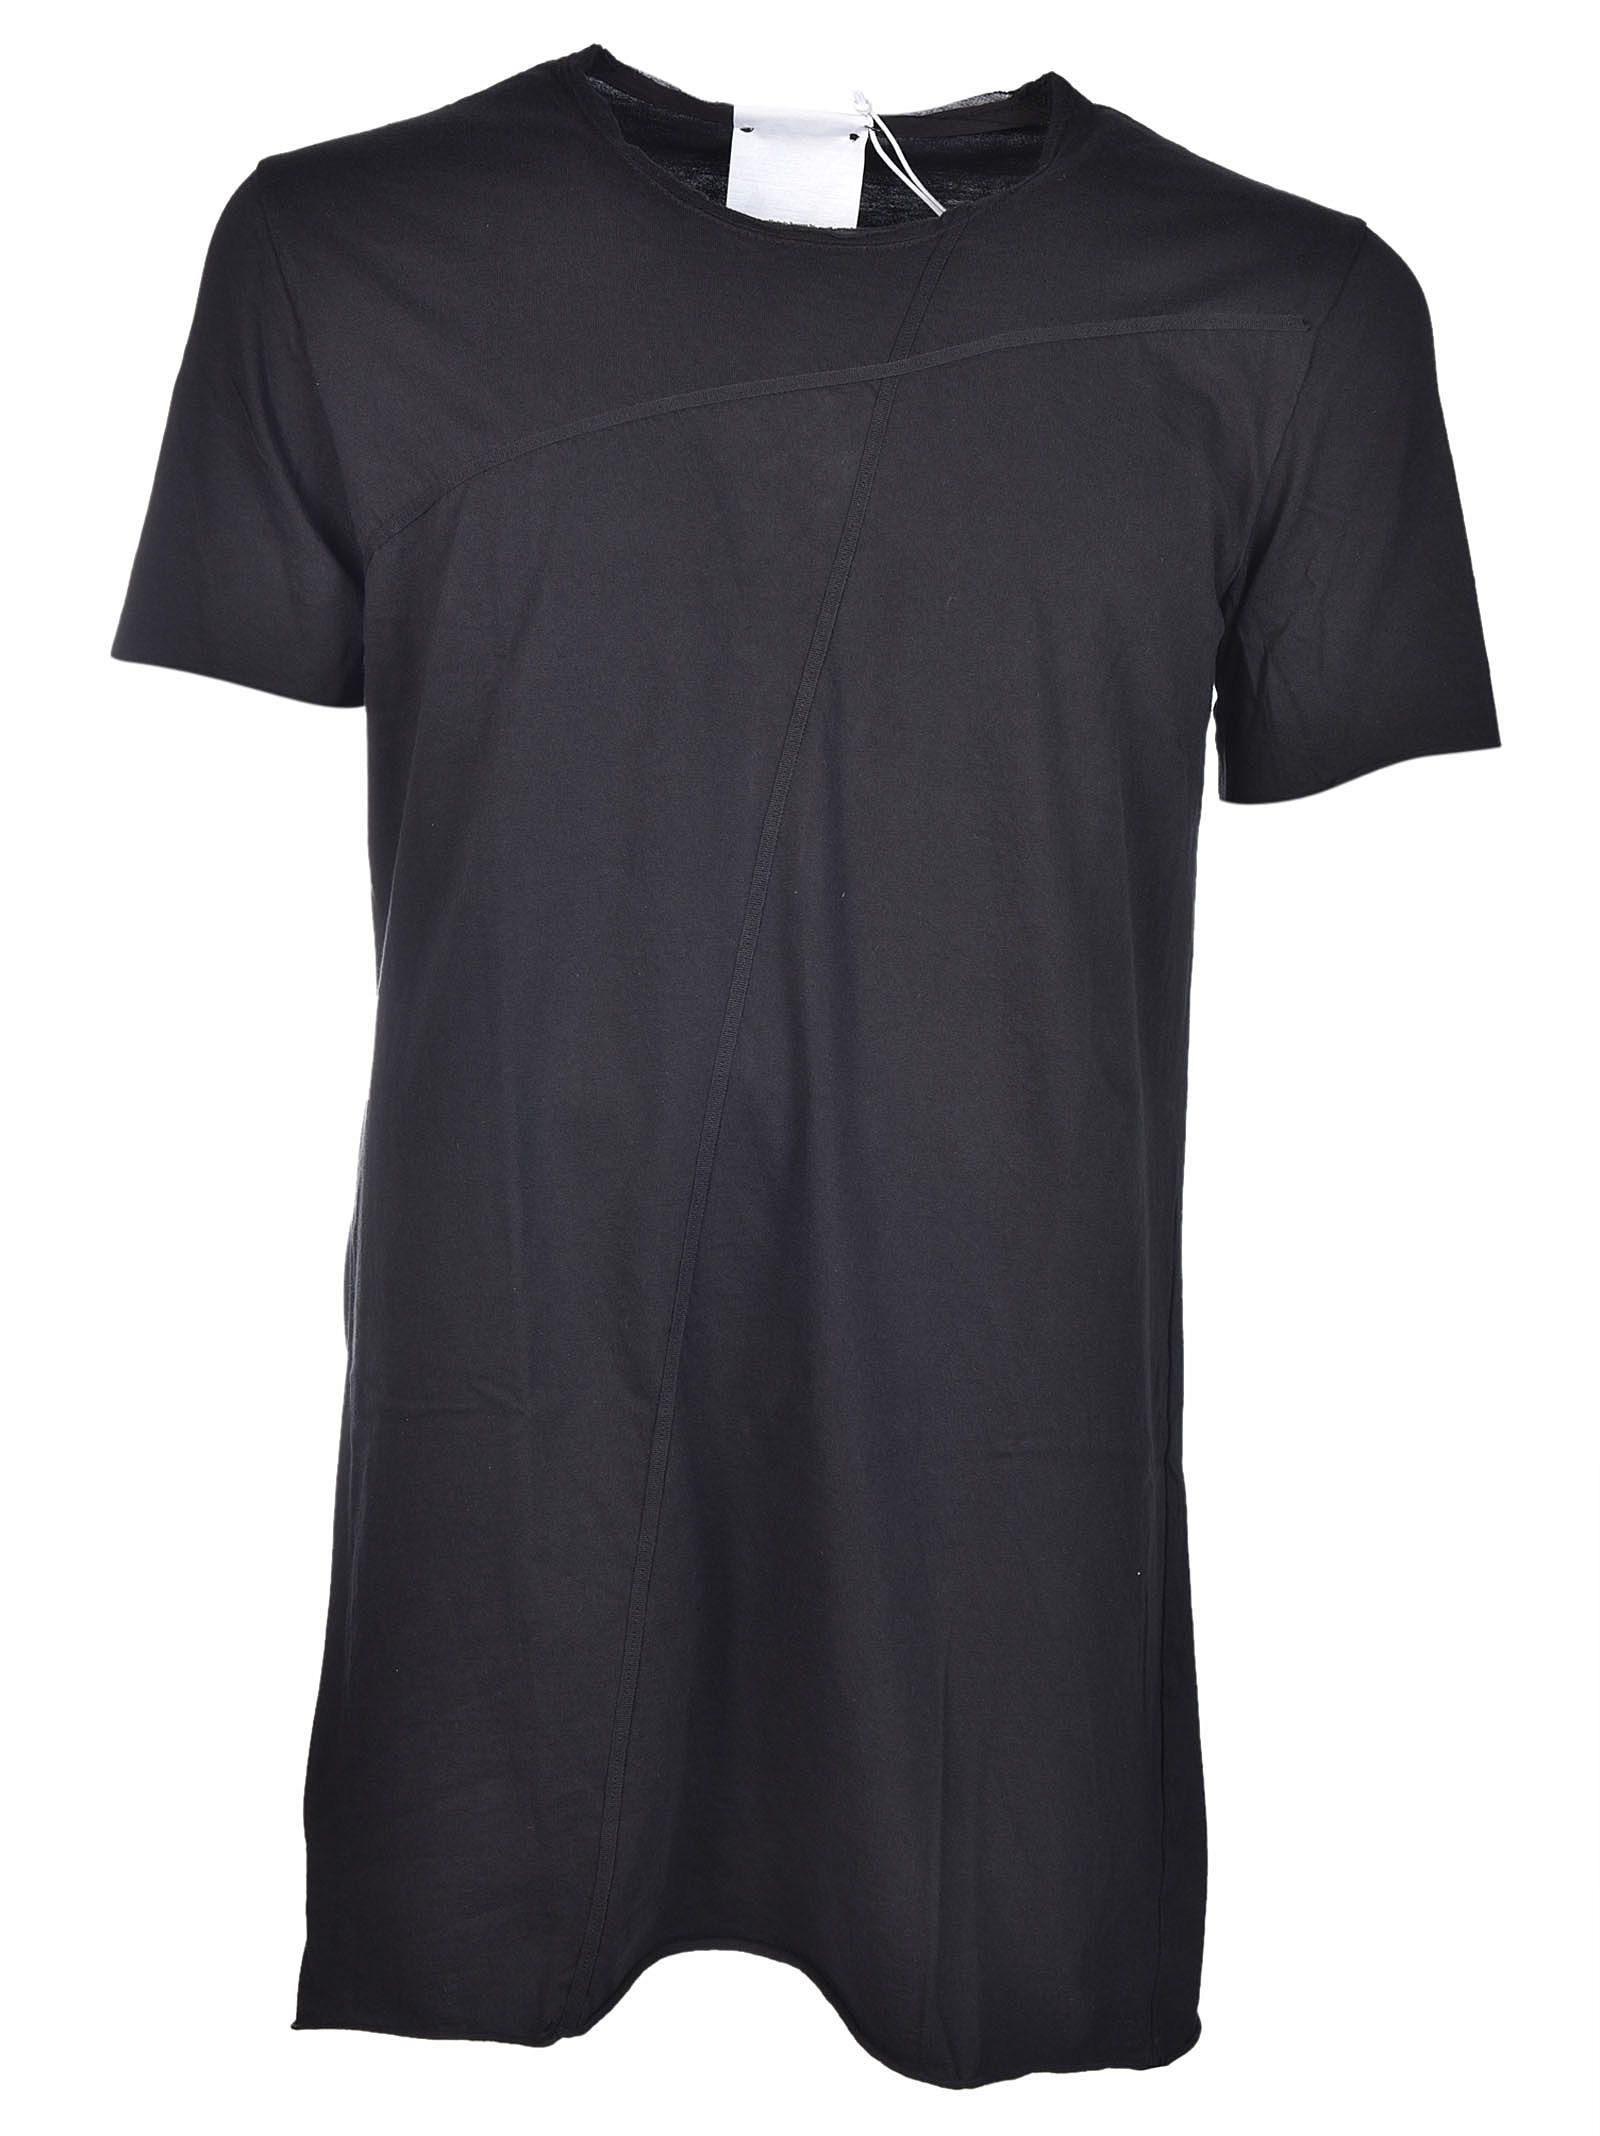 Lost & Found Layered T-shirt